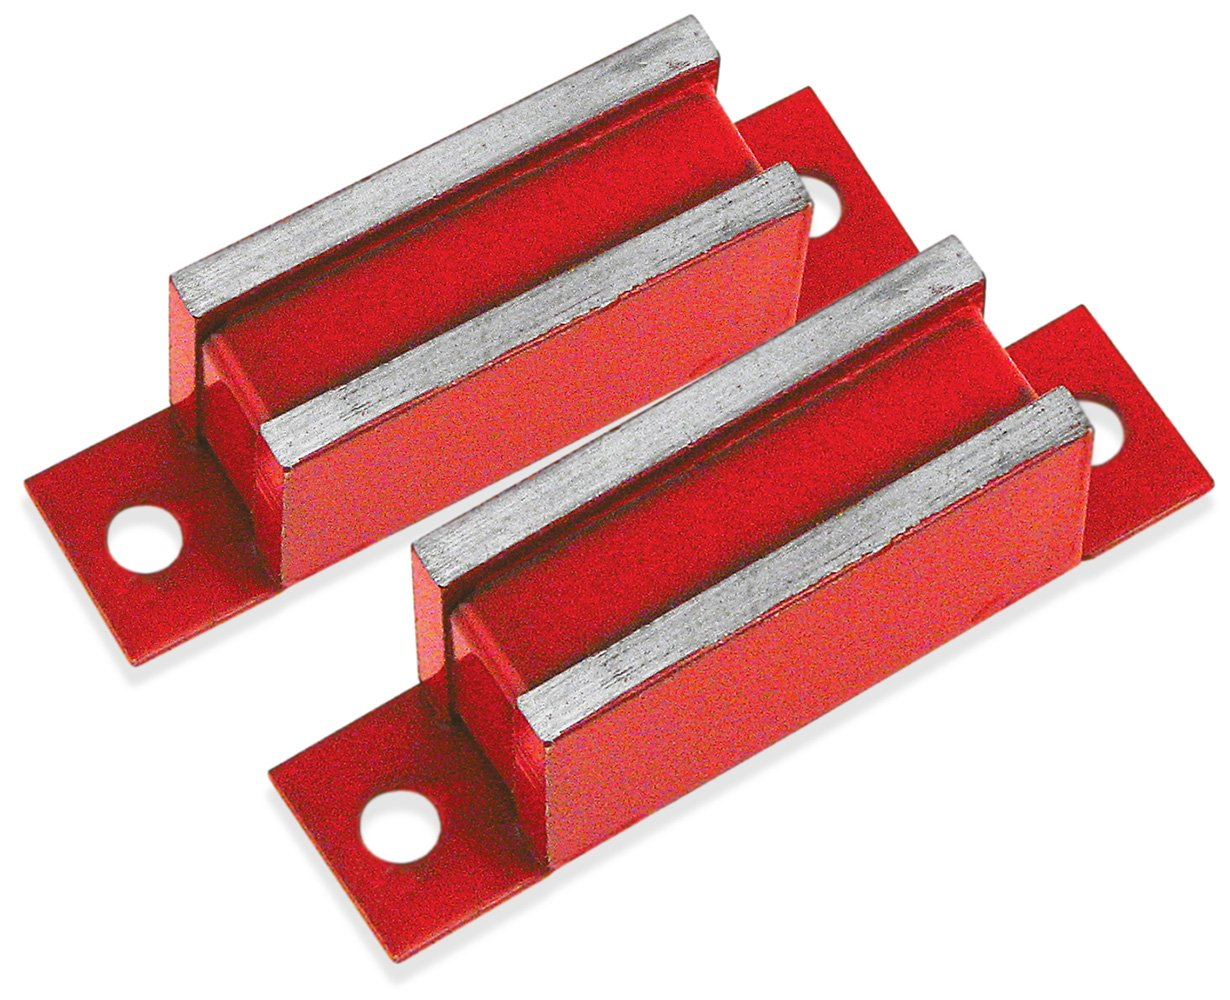 Master Magnetics LM-20BX2 Magnet Catch, Industrial Type with Mounting Holes Painted Red, 3'' Length, 0.75'' Width, 0.562'' Height, 20 Pounds (Pack of 2)